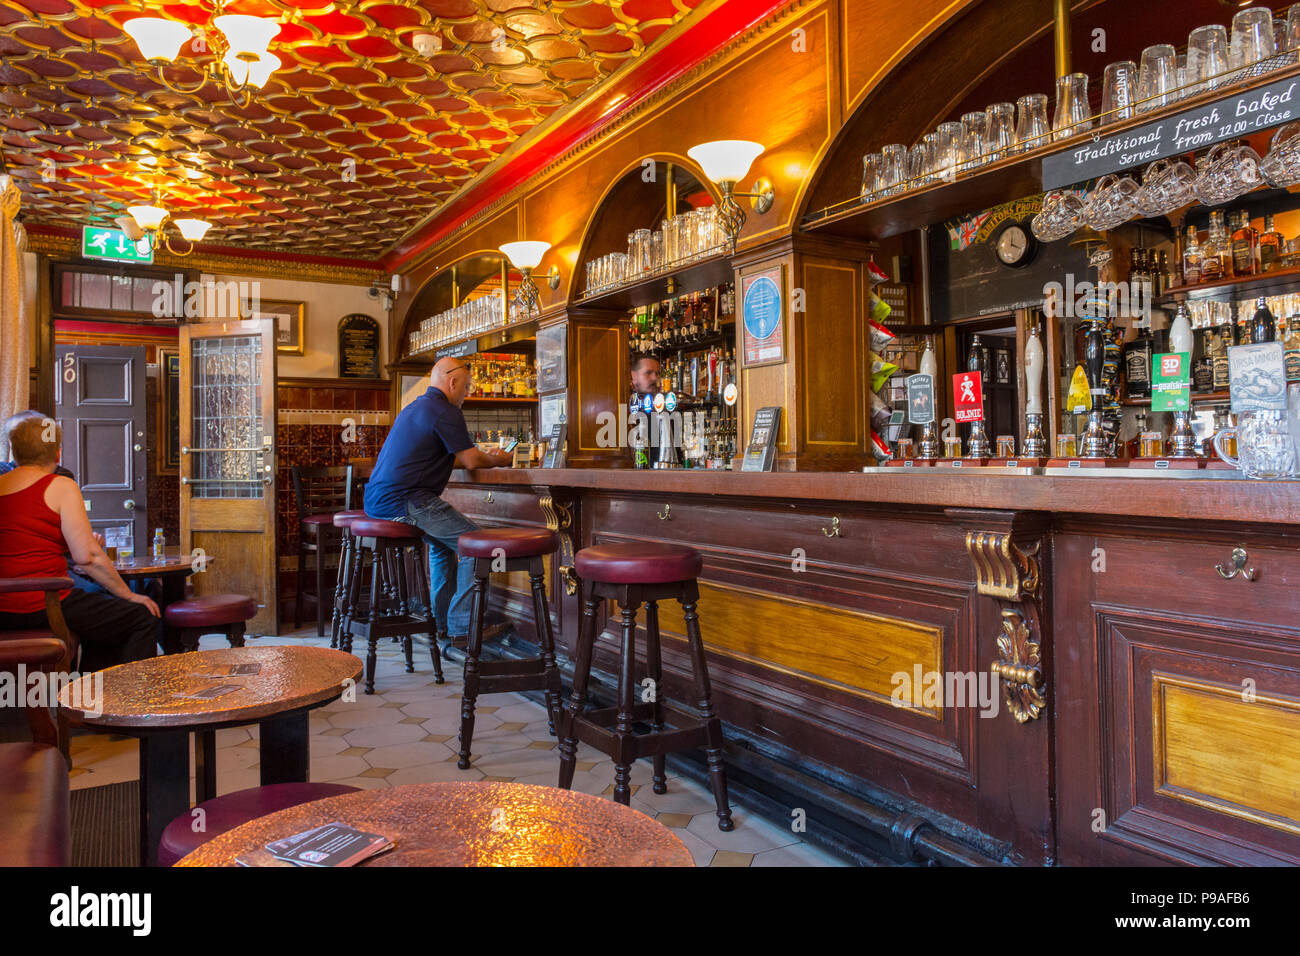 Inside the historic 'Briton's Protection' public house, Manchester, England, UK. Grade II listed. - Stock Image